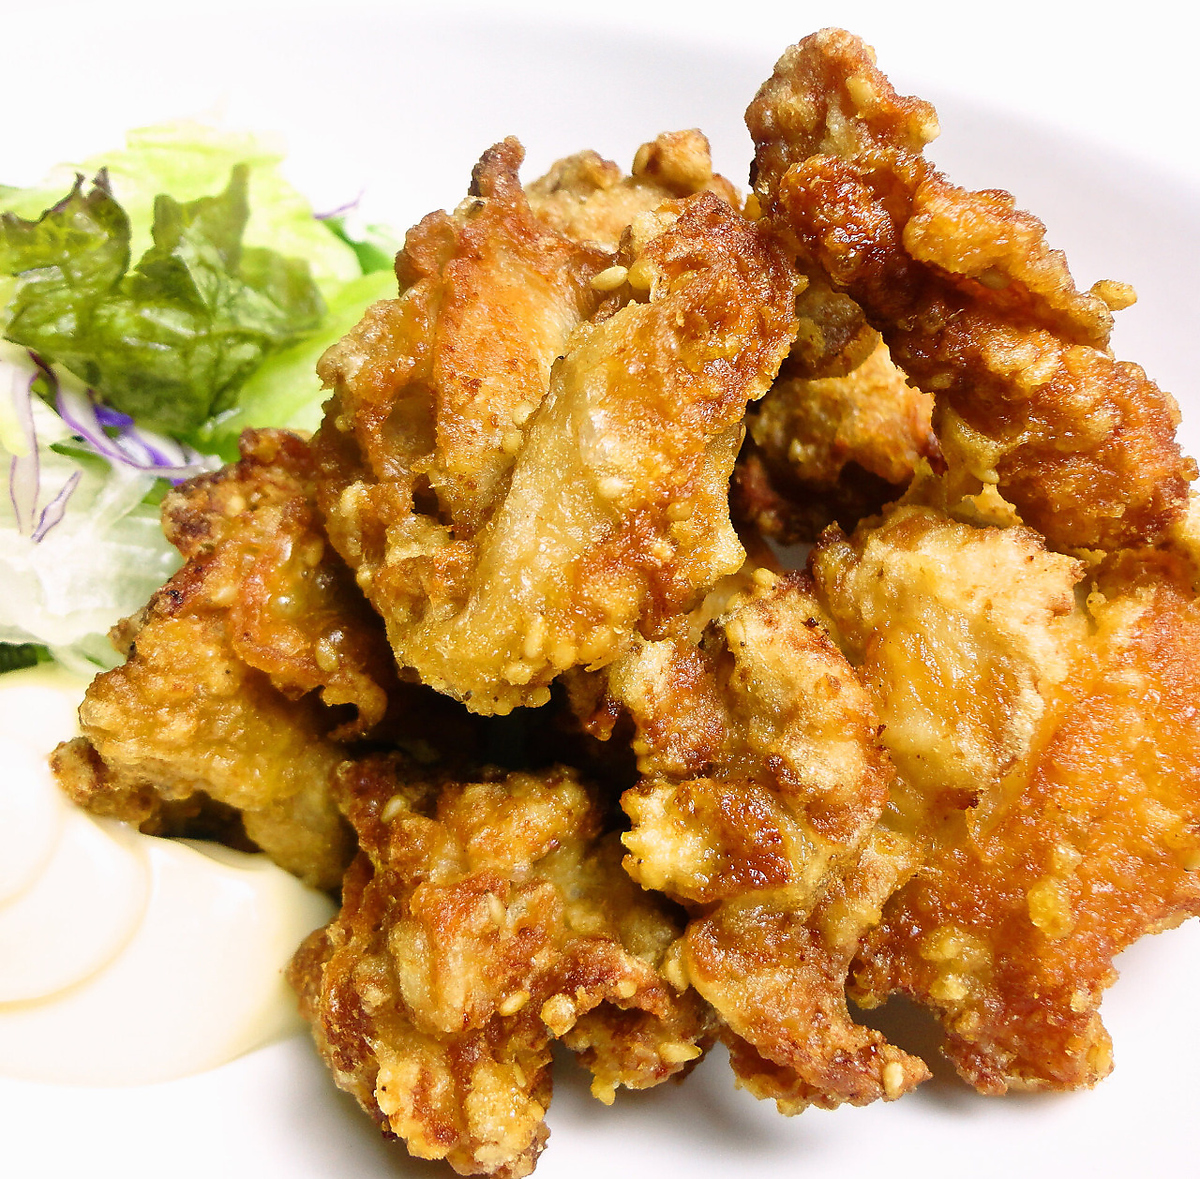 Deep-fried chicken thigh meat